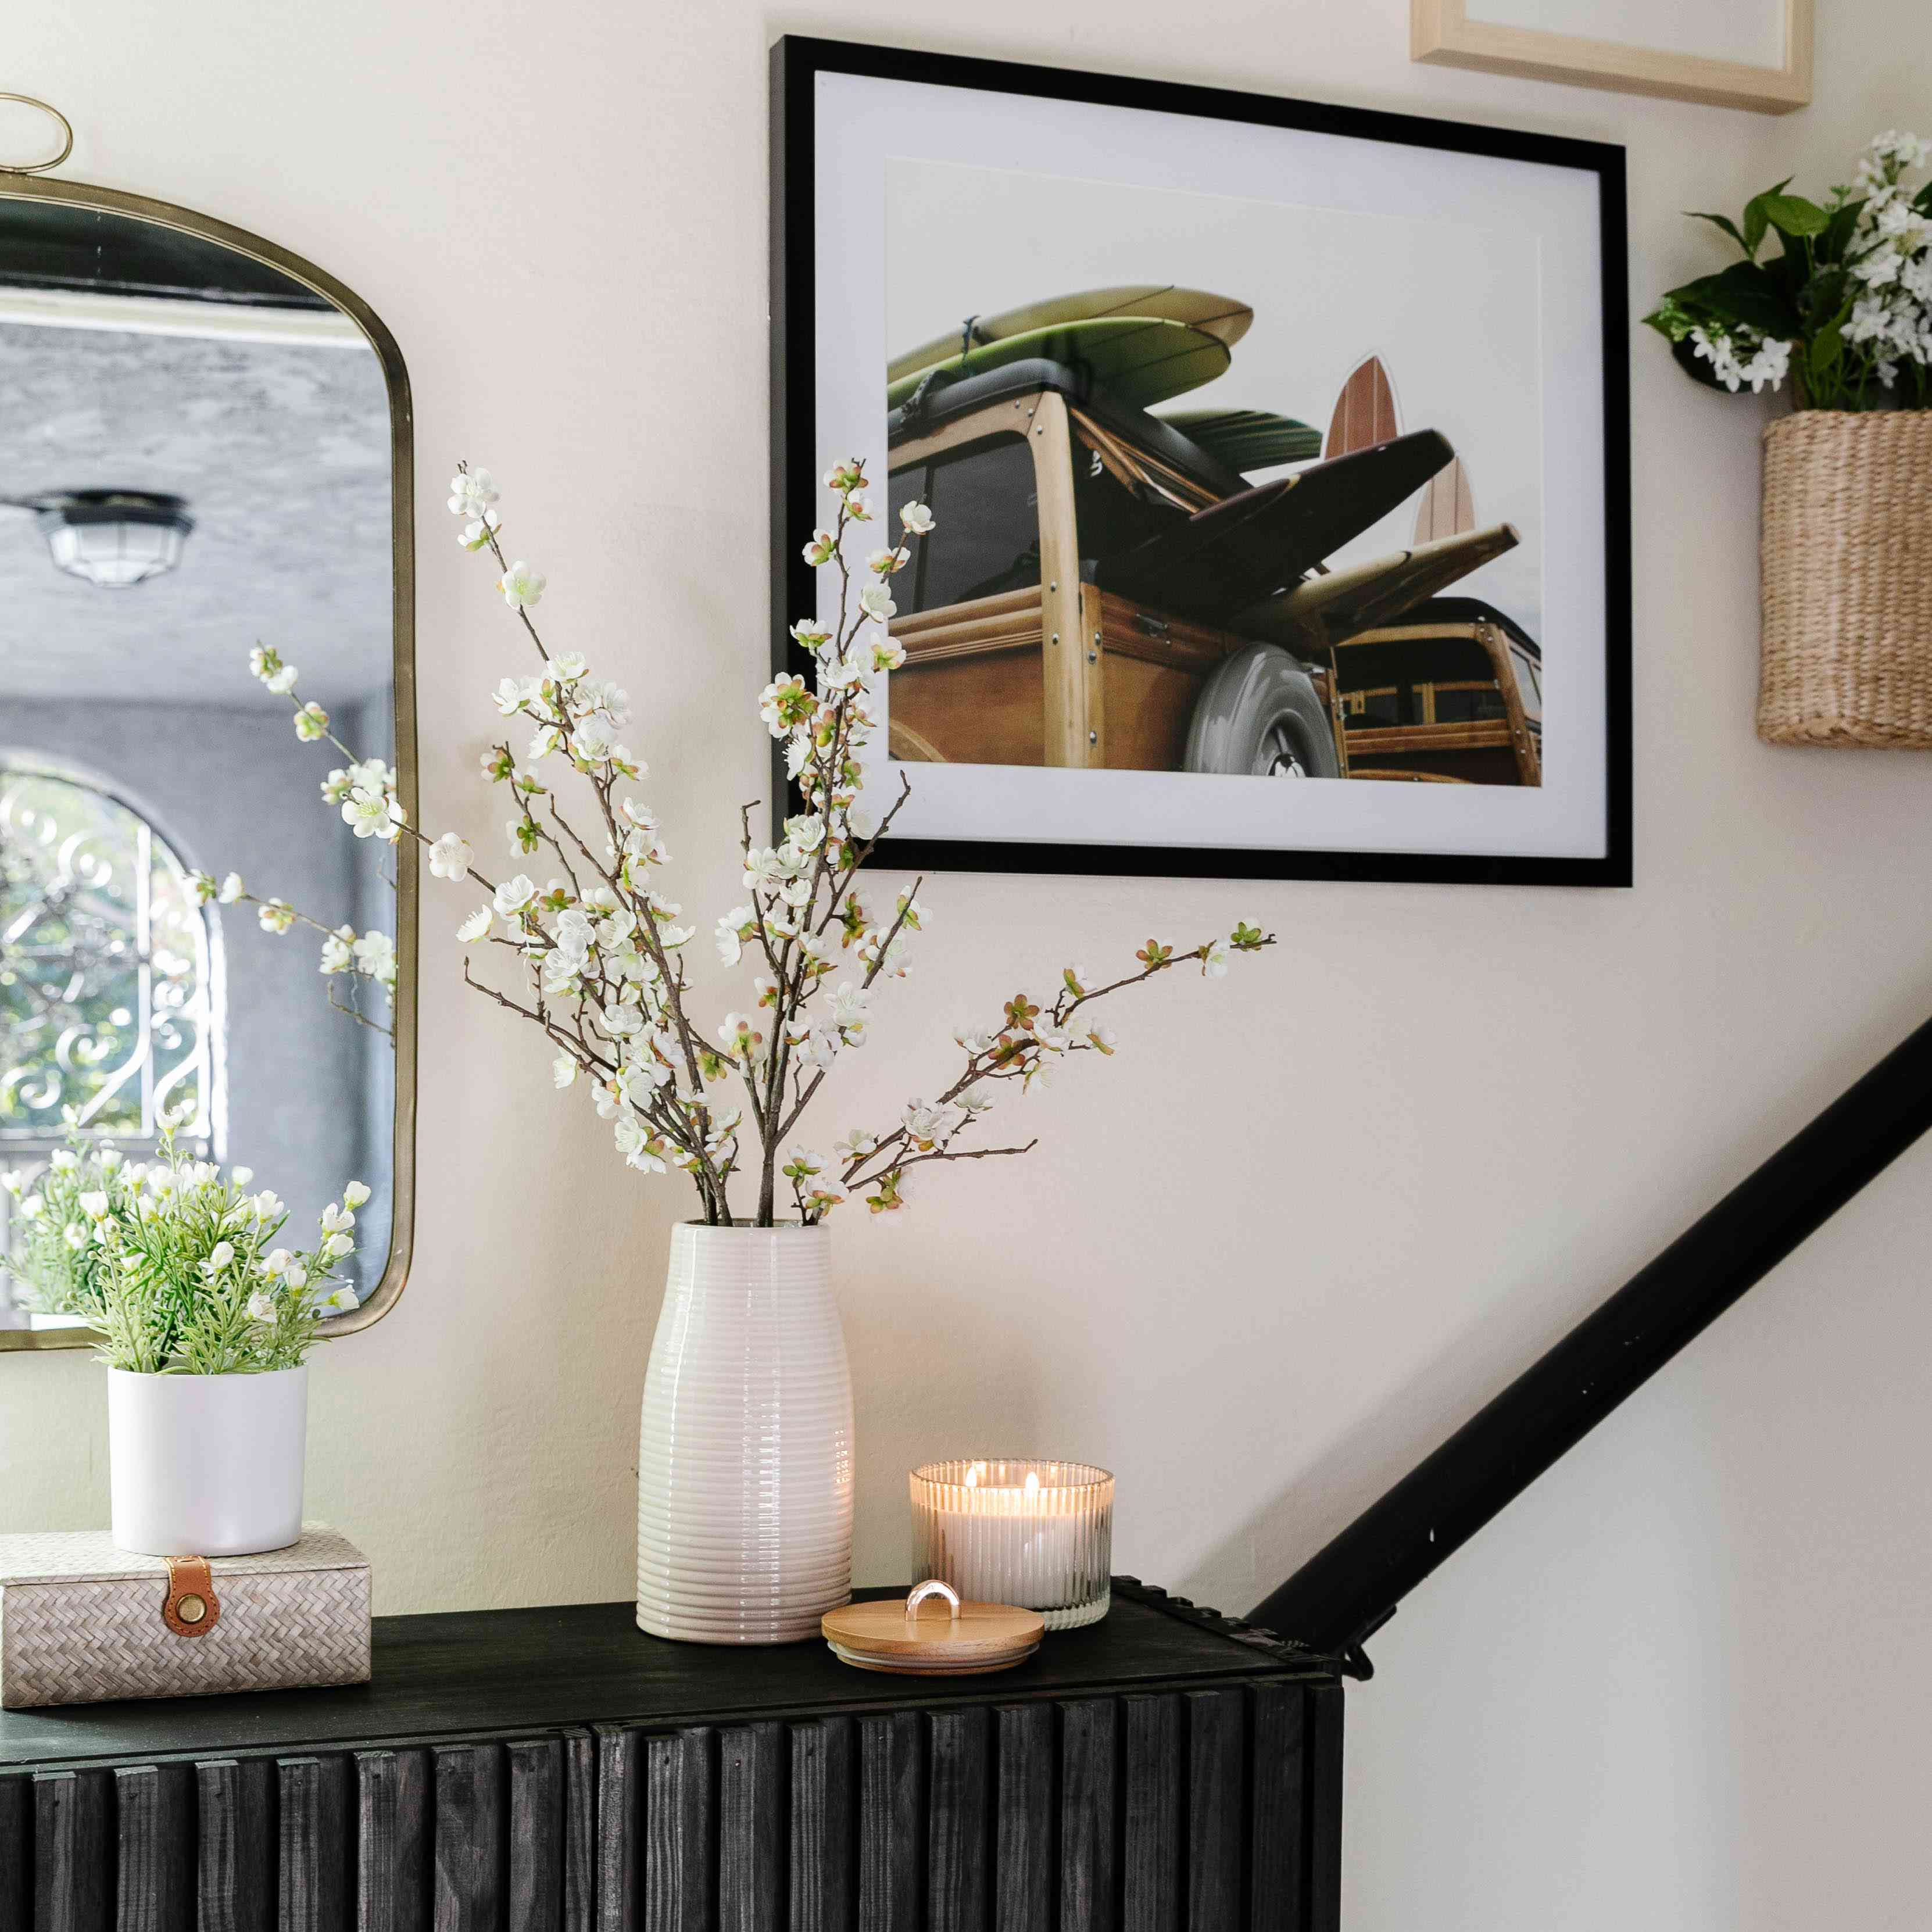 decorative accents in the home of Drew Scott, the Lone Fox